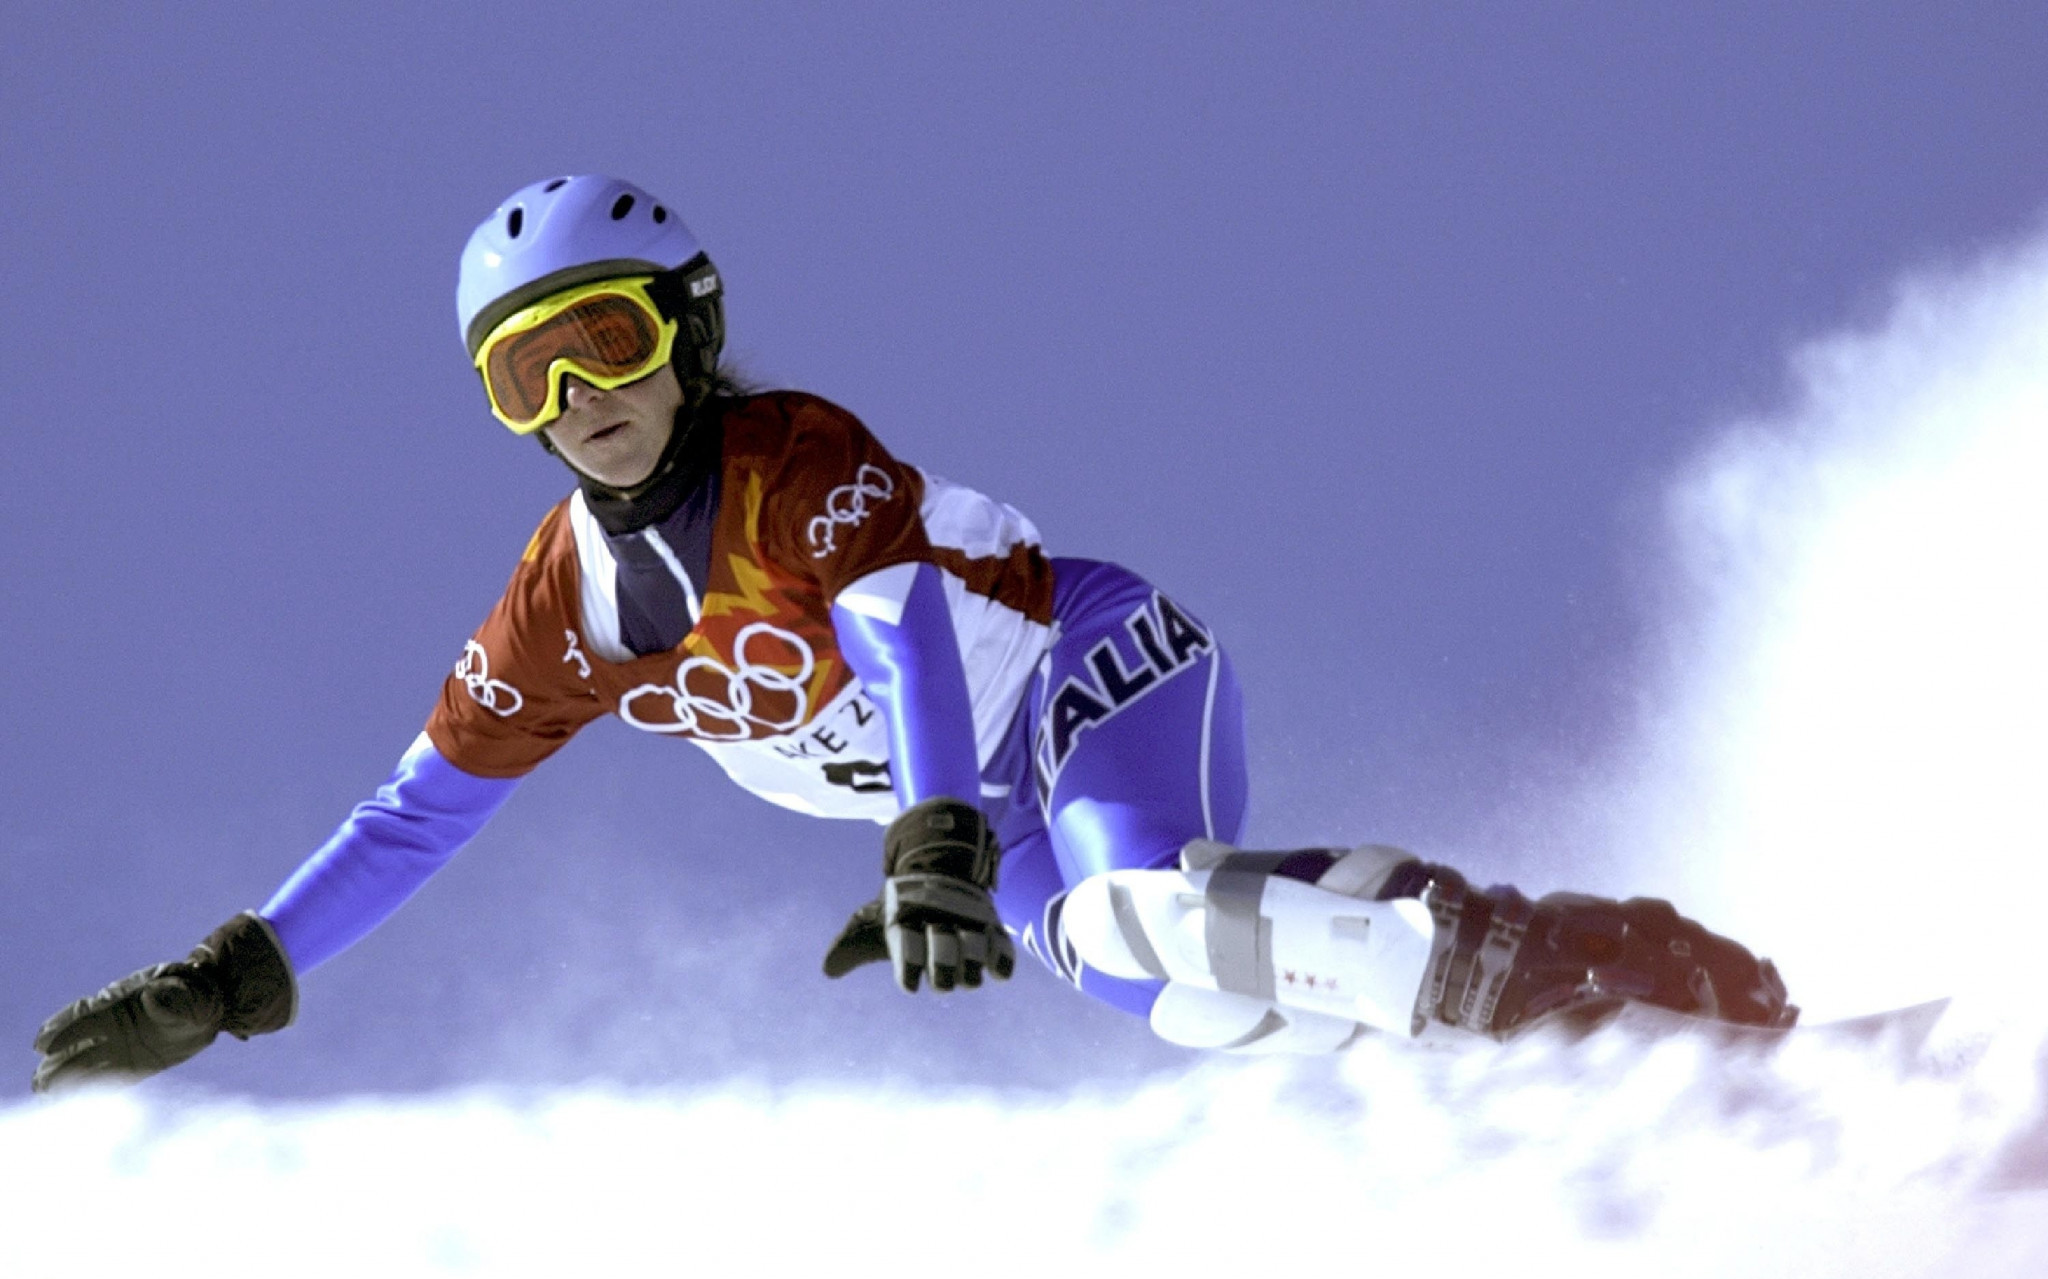 Lidia Trettel won Italy's sole Olympic ALpine snowboard medal in 2002  ©Getty Images